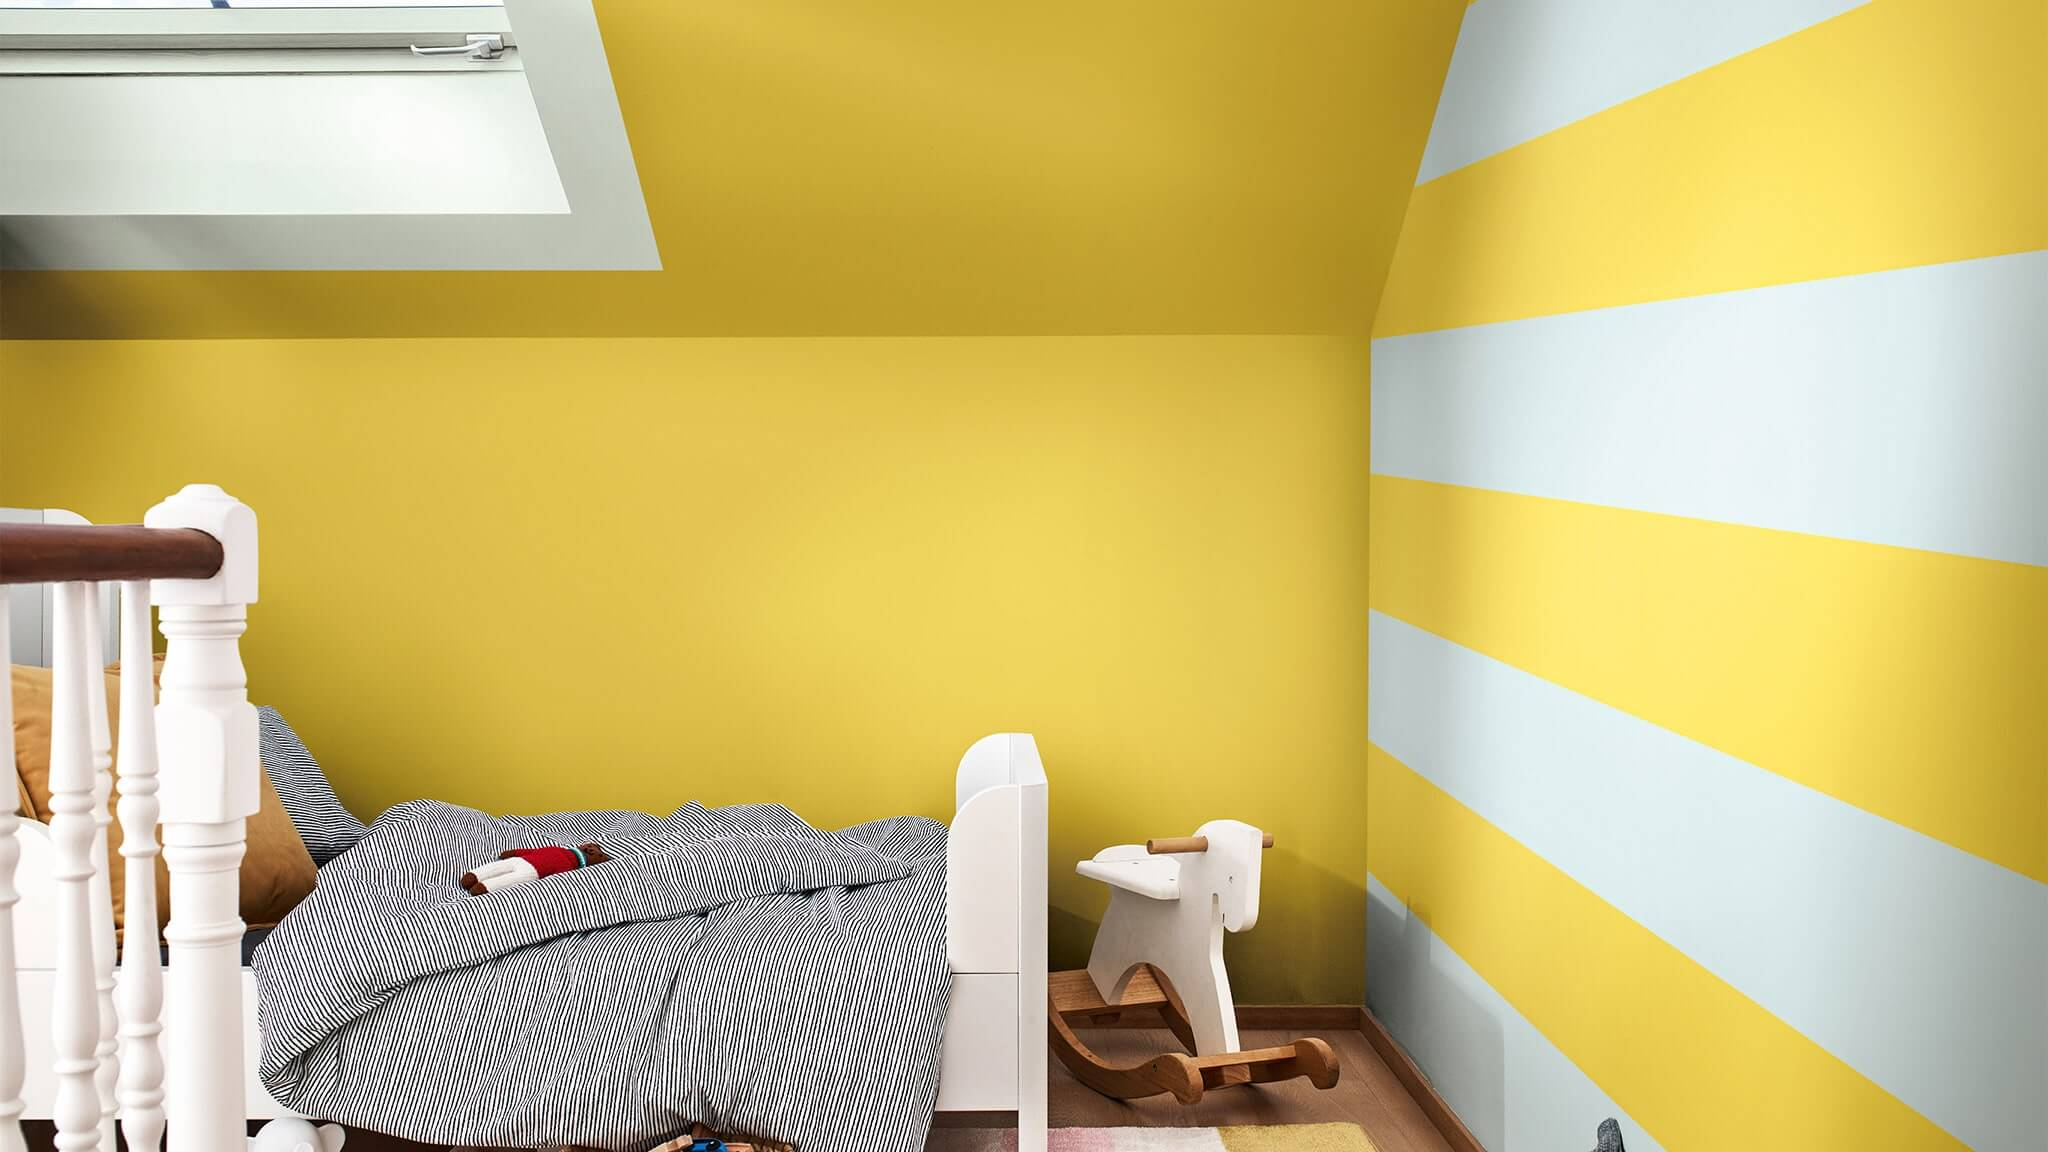 dulux-colour-futures-colour-of-the-year-2020-a-home-for-play-kidsroom-inspiration-malaysia-42.jpg